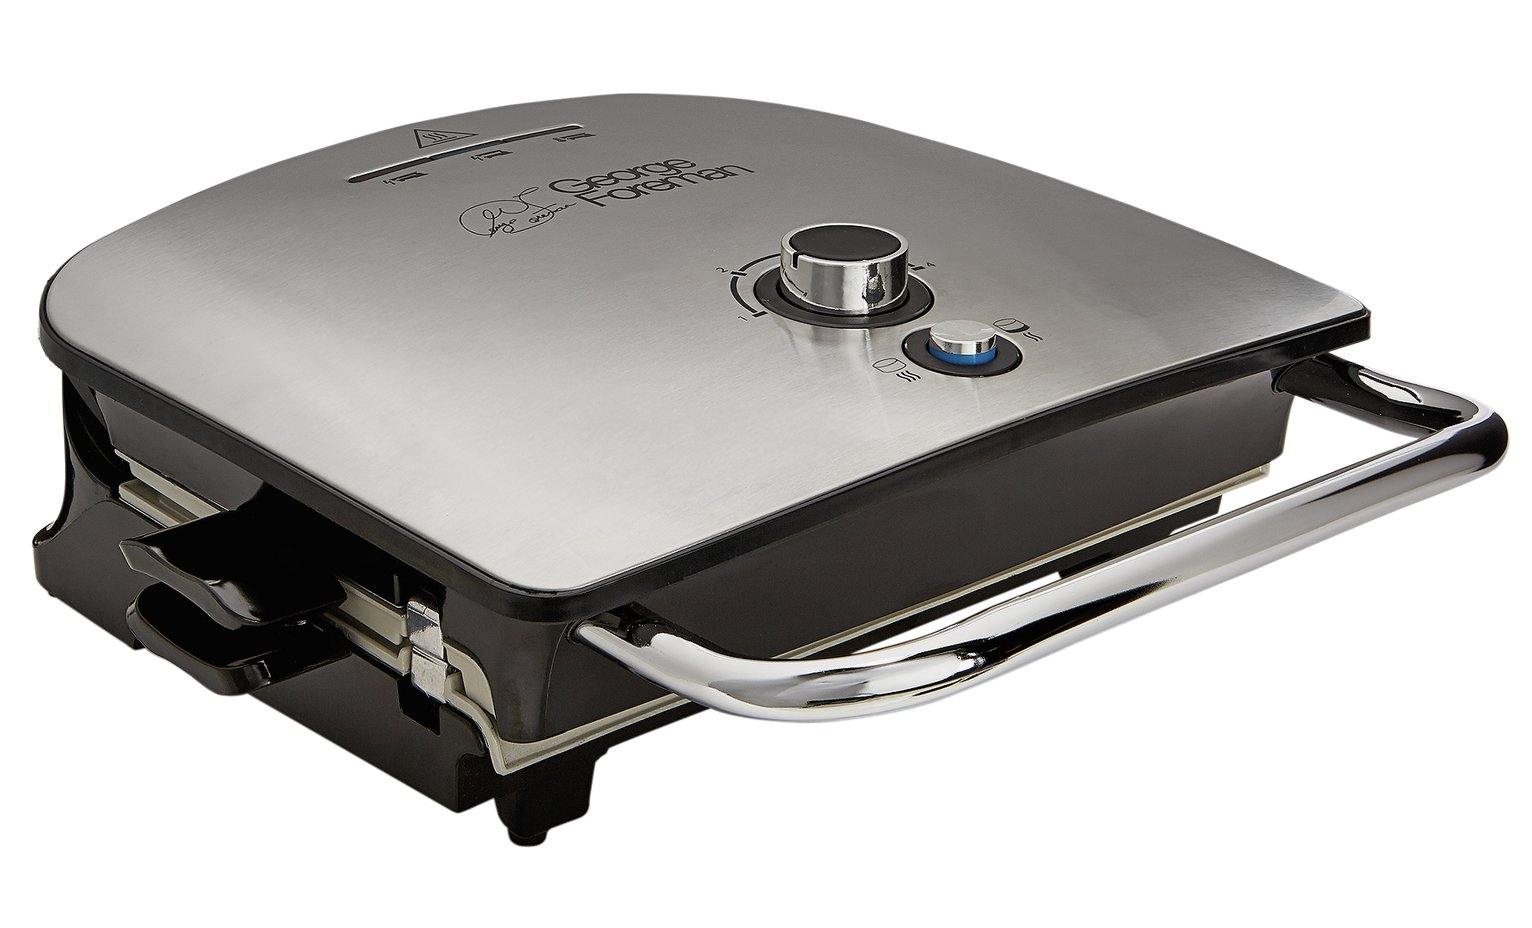 Image of George Foreman - 22160 Family 5 Portion Grill and Melt